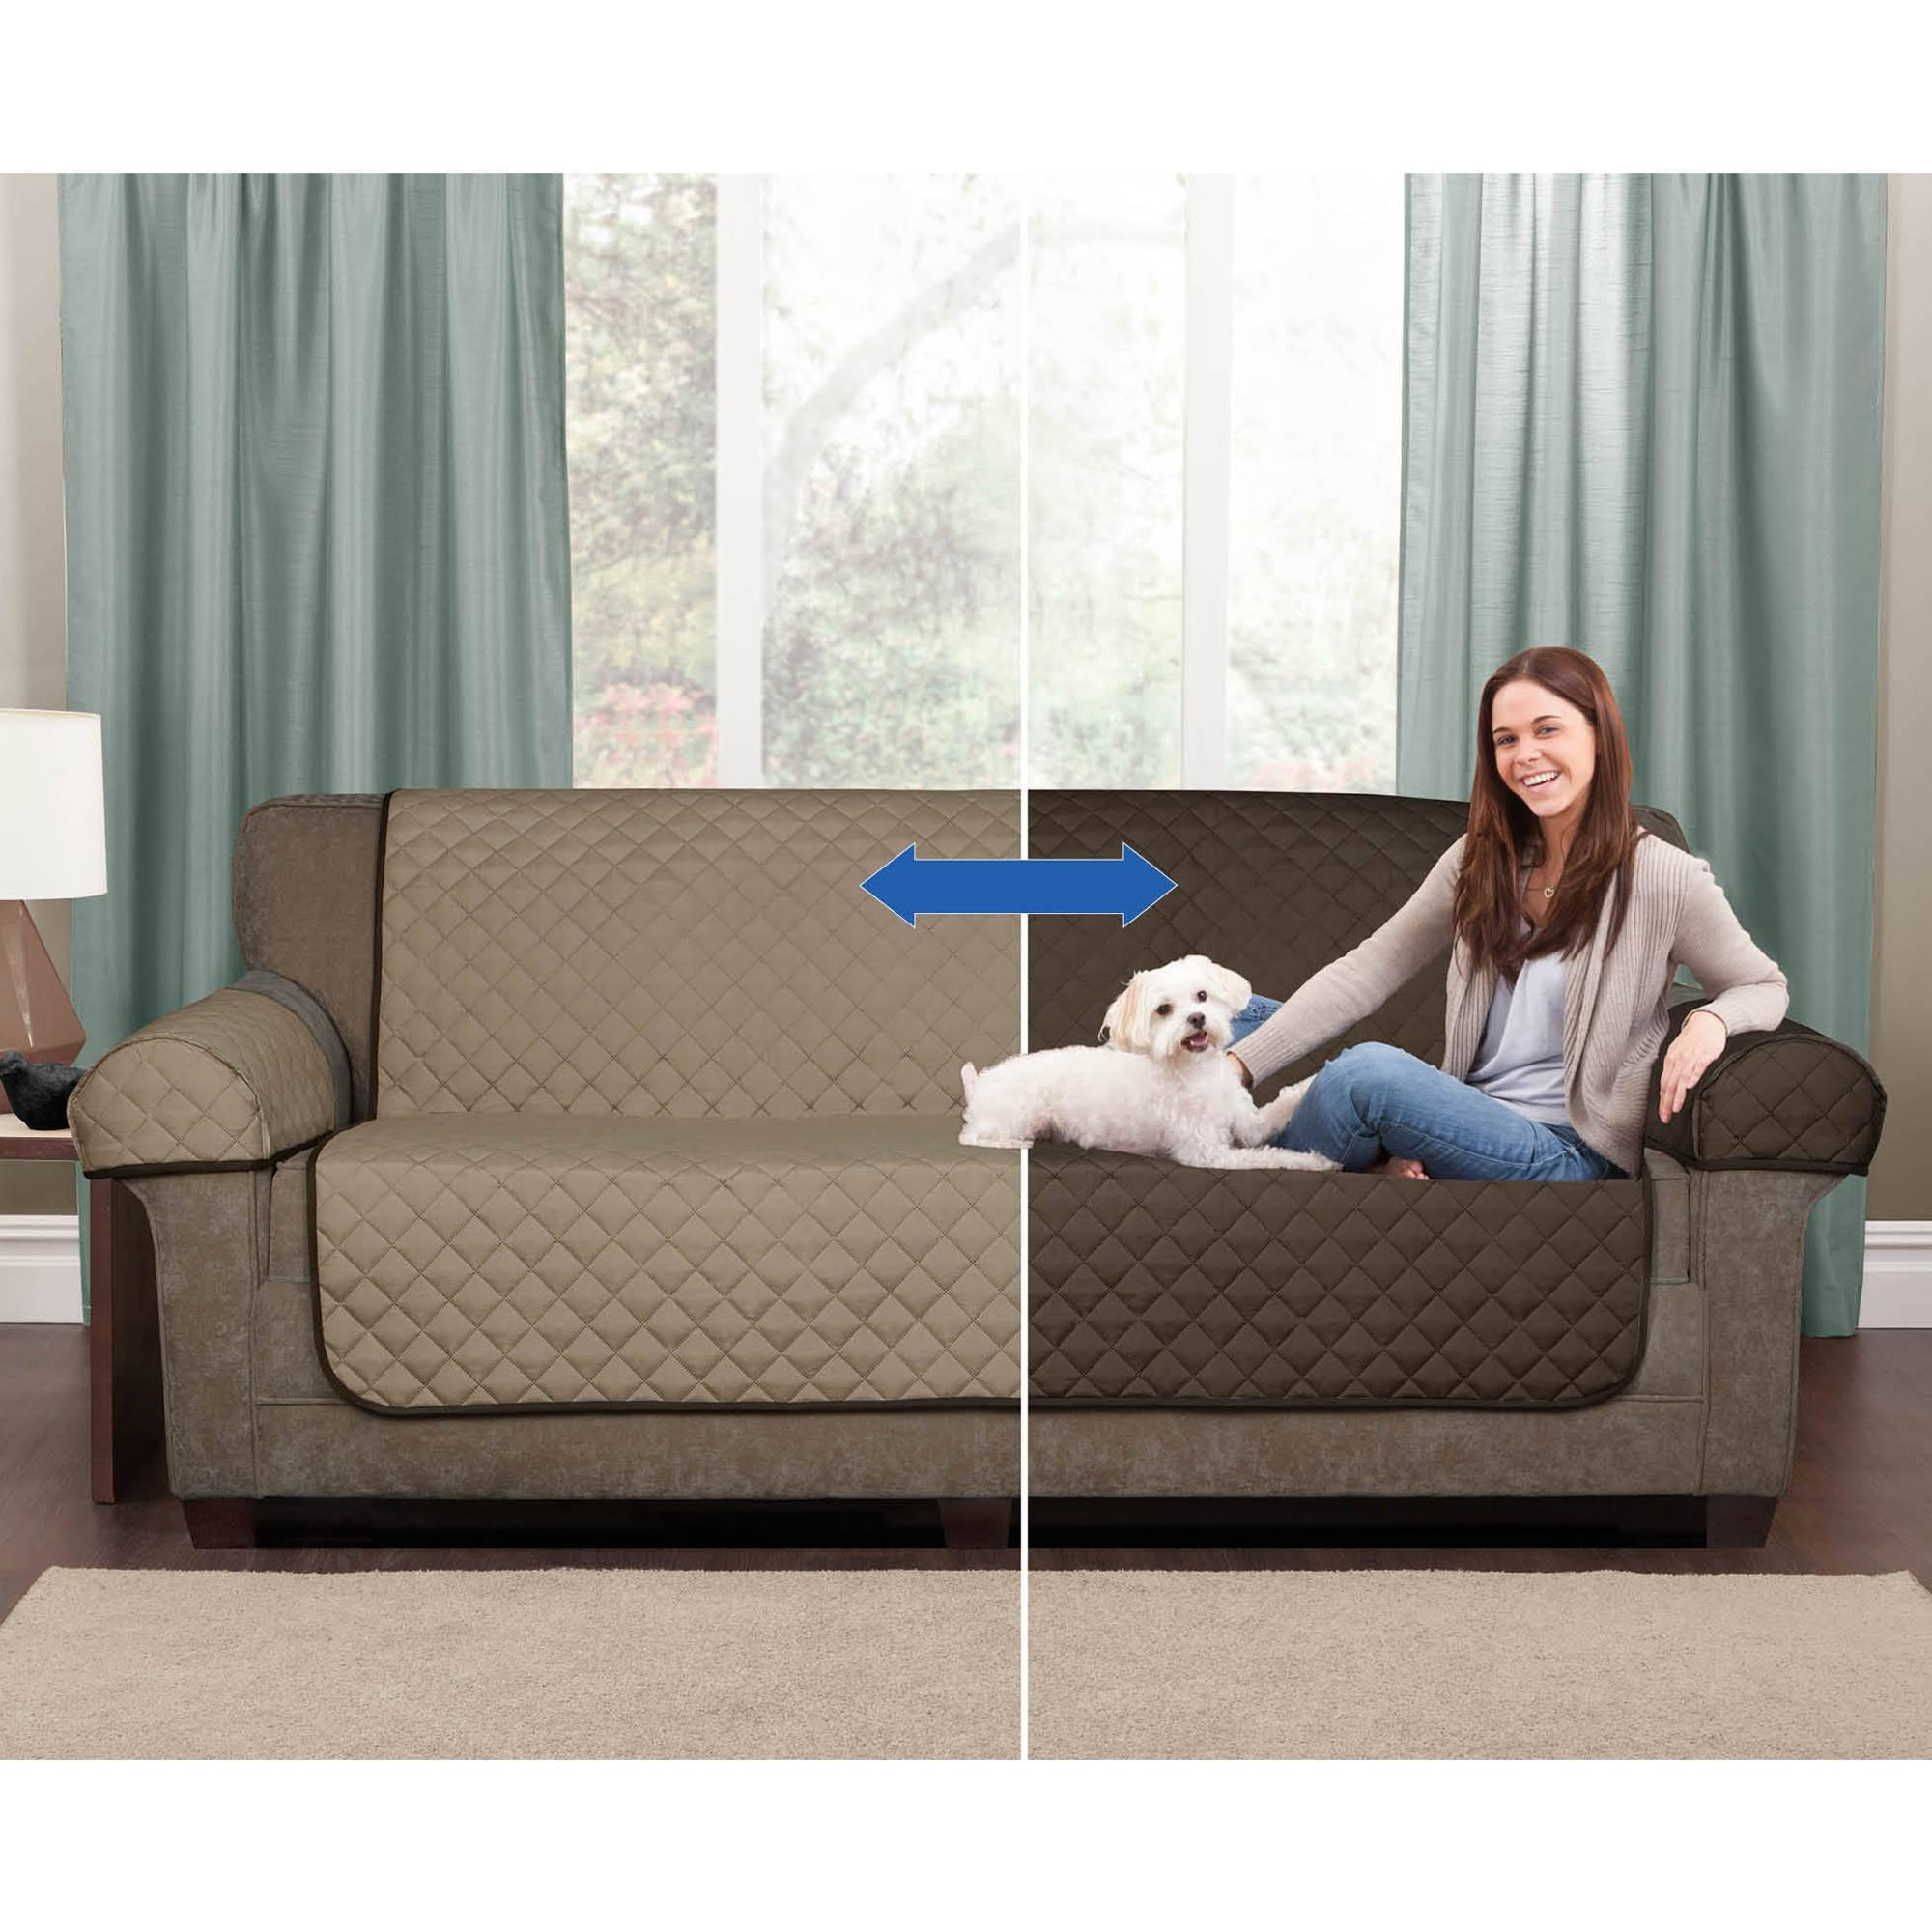 Mainstays Reversible Microfiber Fabric Pet/furniture Cover Within Covers For Sofas And Chairs (View 19 of 20)